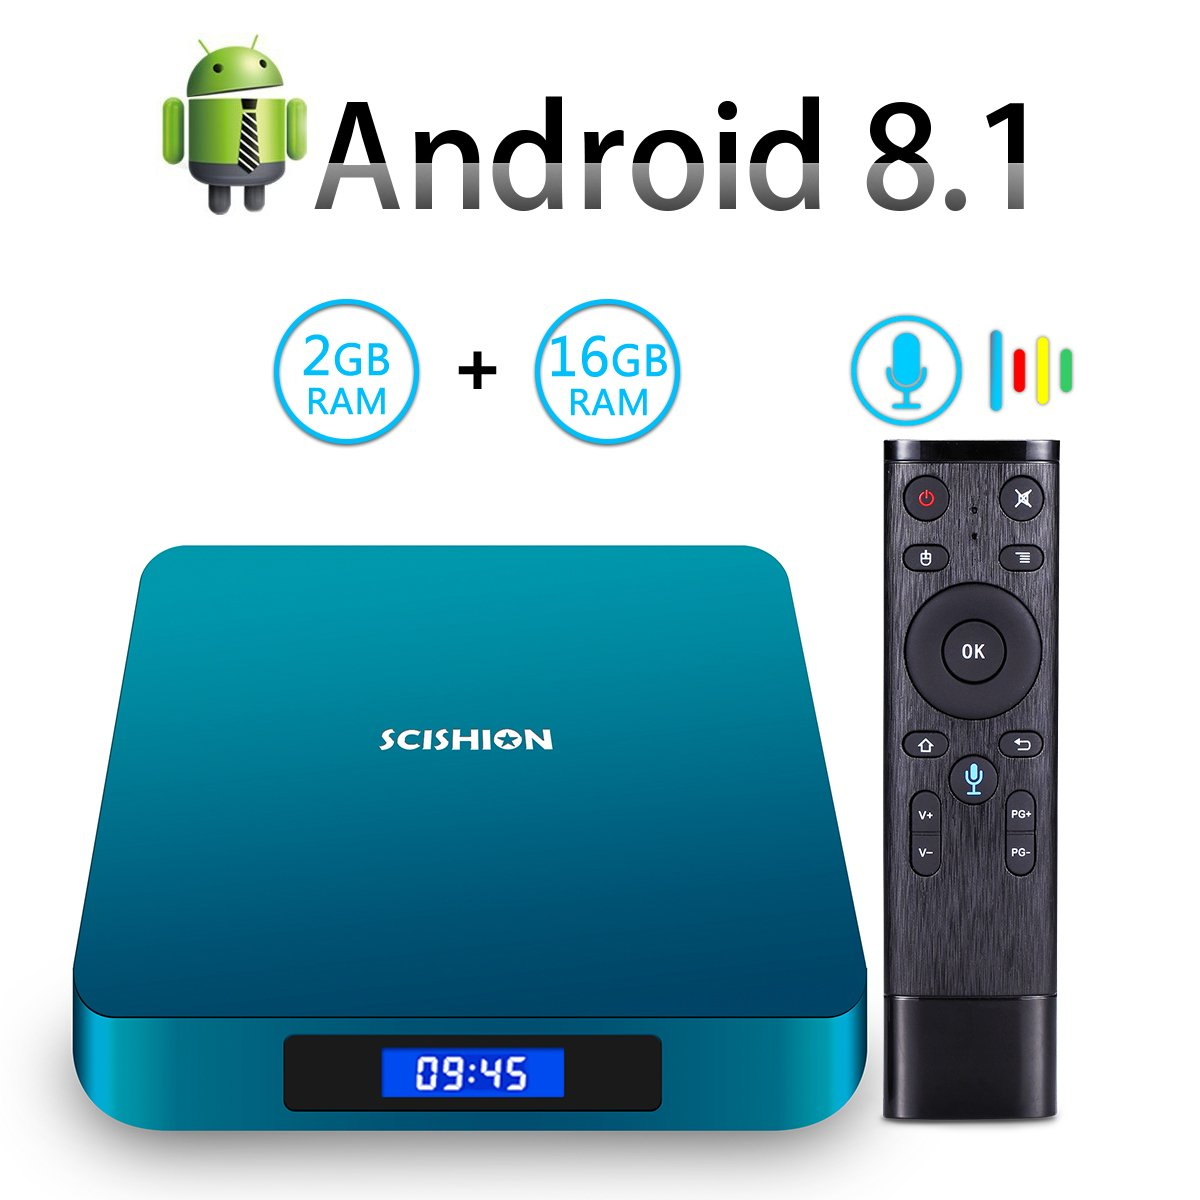 Android 8.1 TV Box with Voice Remote, RK3328 Quad Core 64bit 2GB DDR3 16GB eMMC Memory Smart TV Box with Bluetooth 4.0 WiFi Ethernet HDMI HD 4K Media Player Set Top Box by YAGALA (Image #1)